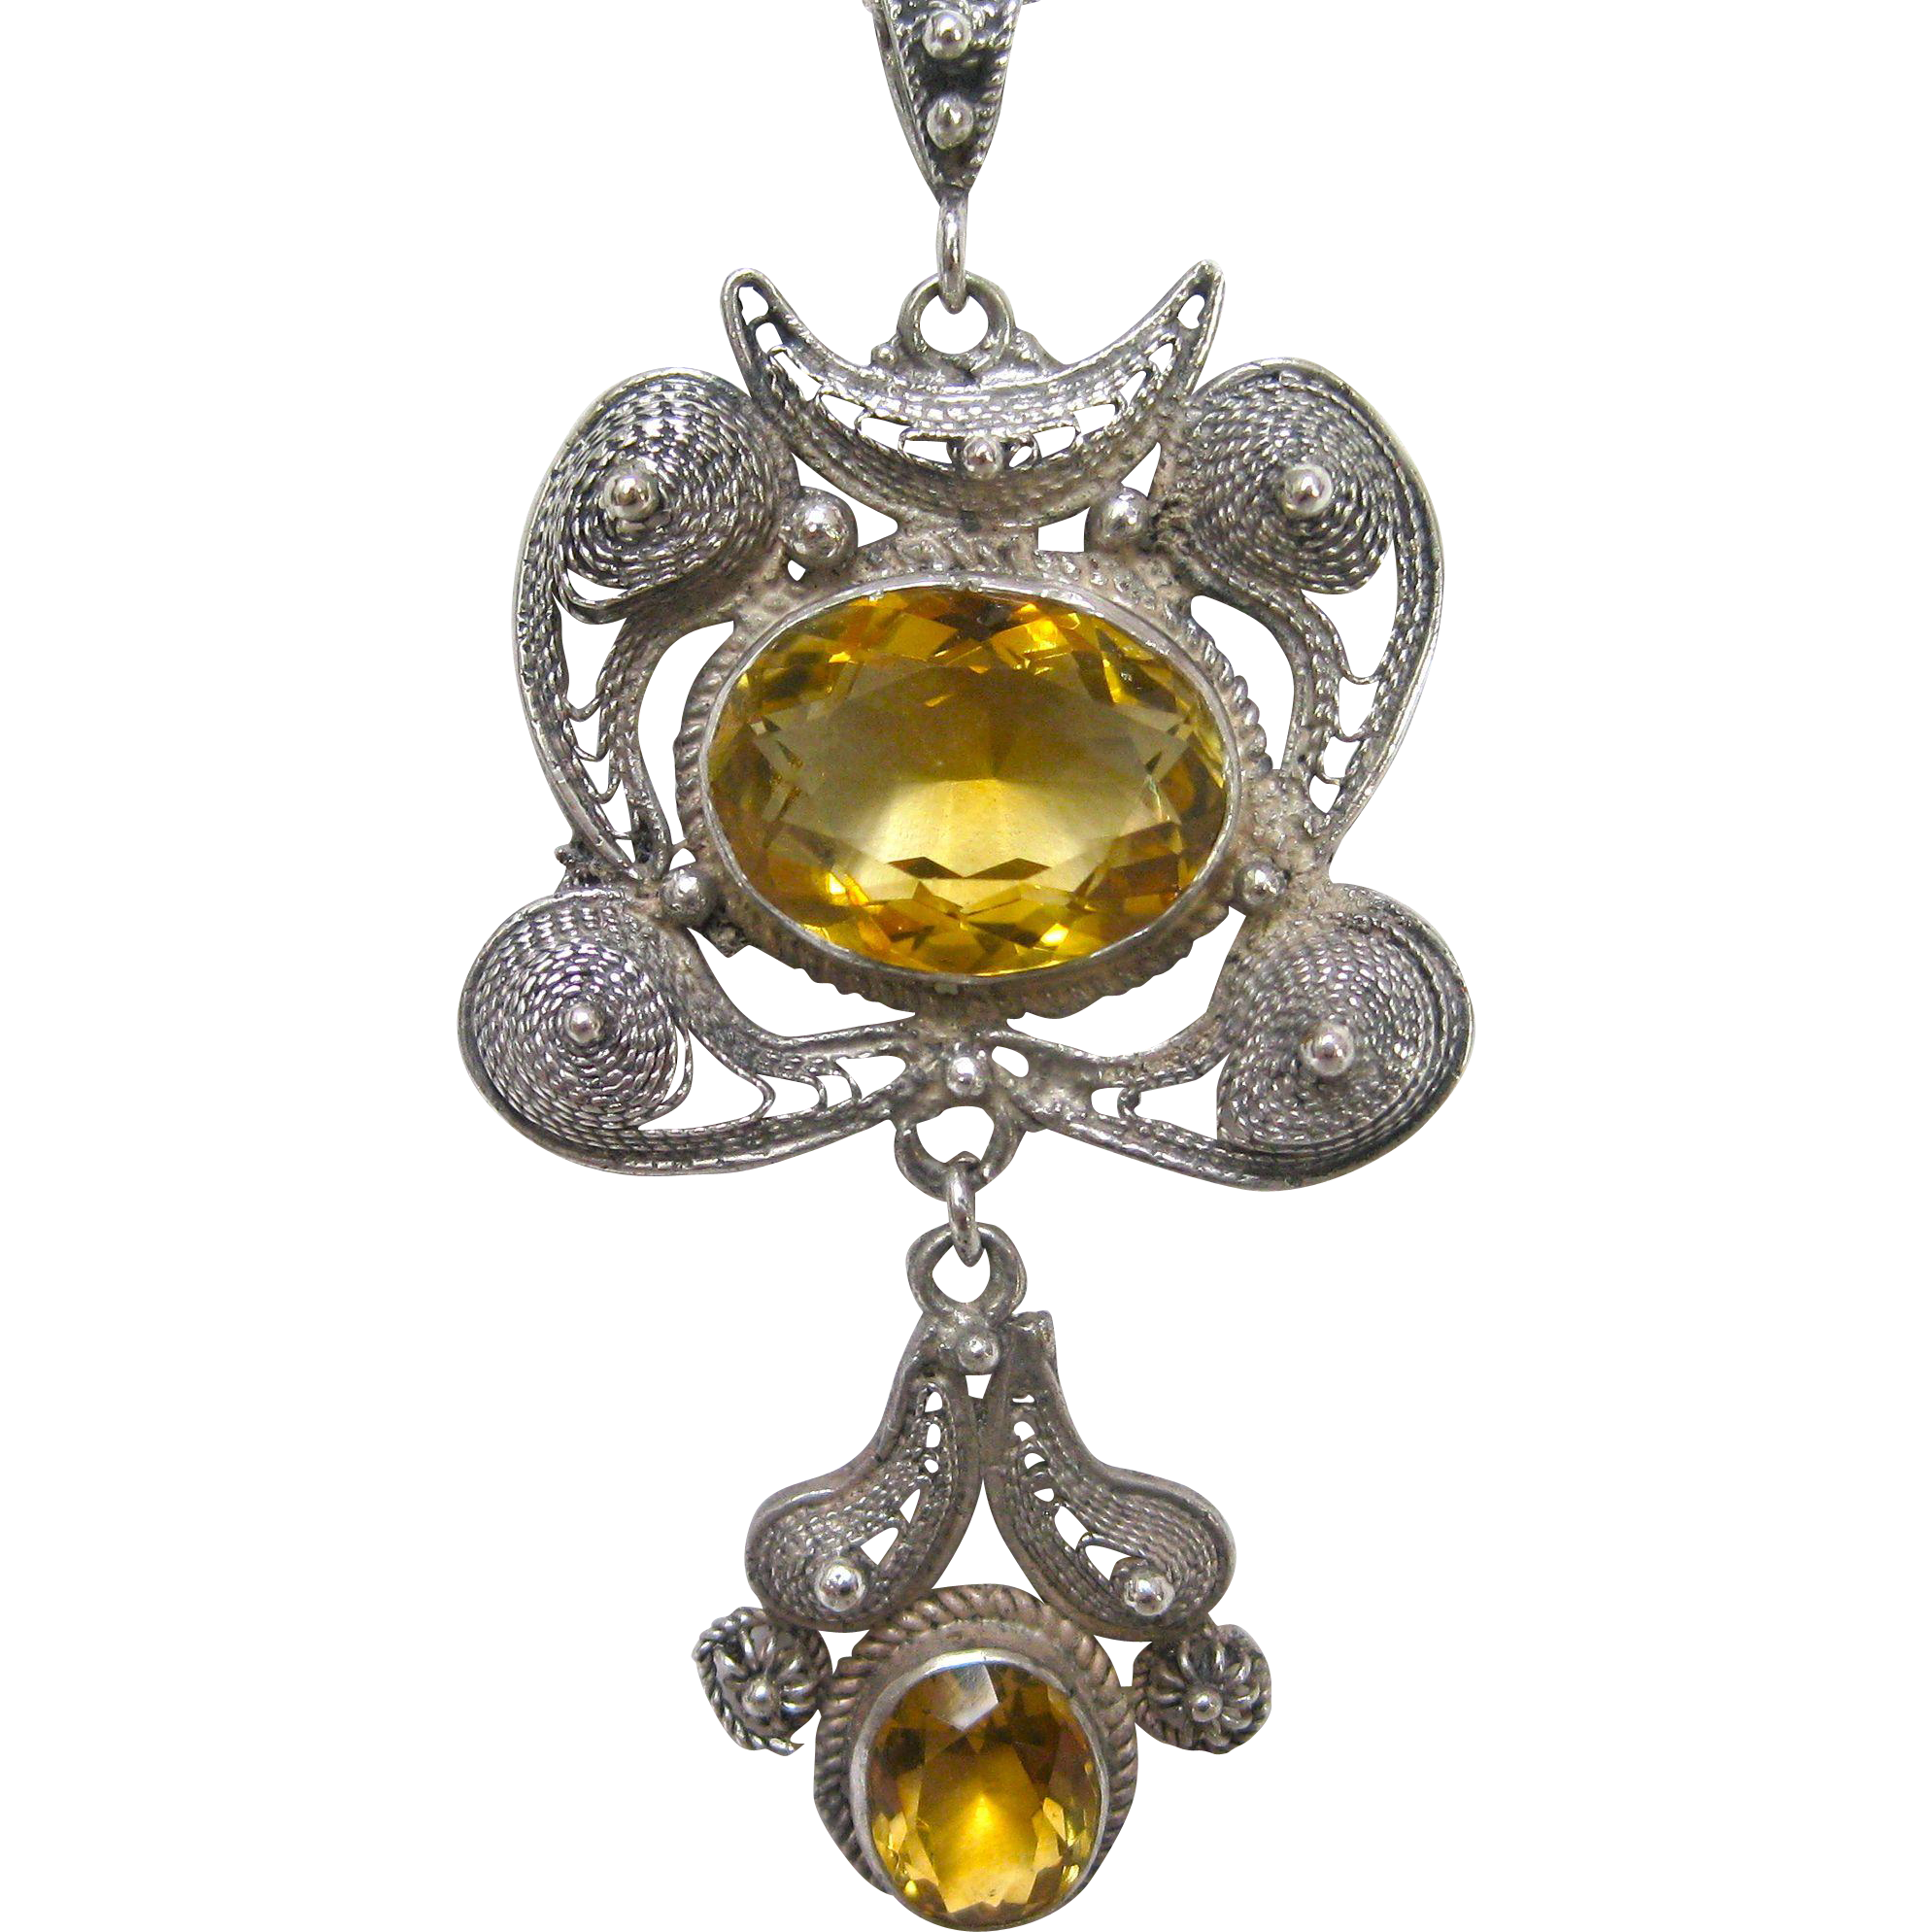 pendant itm sterling click silver to enlarge necklace thumbnails drop new chain citrine amethyst